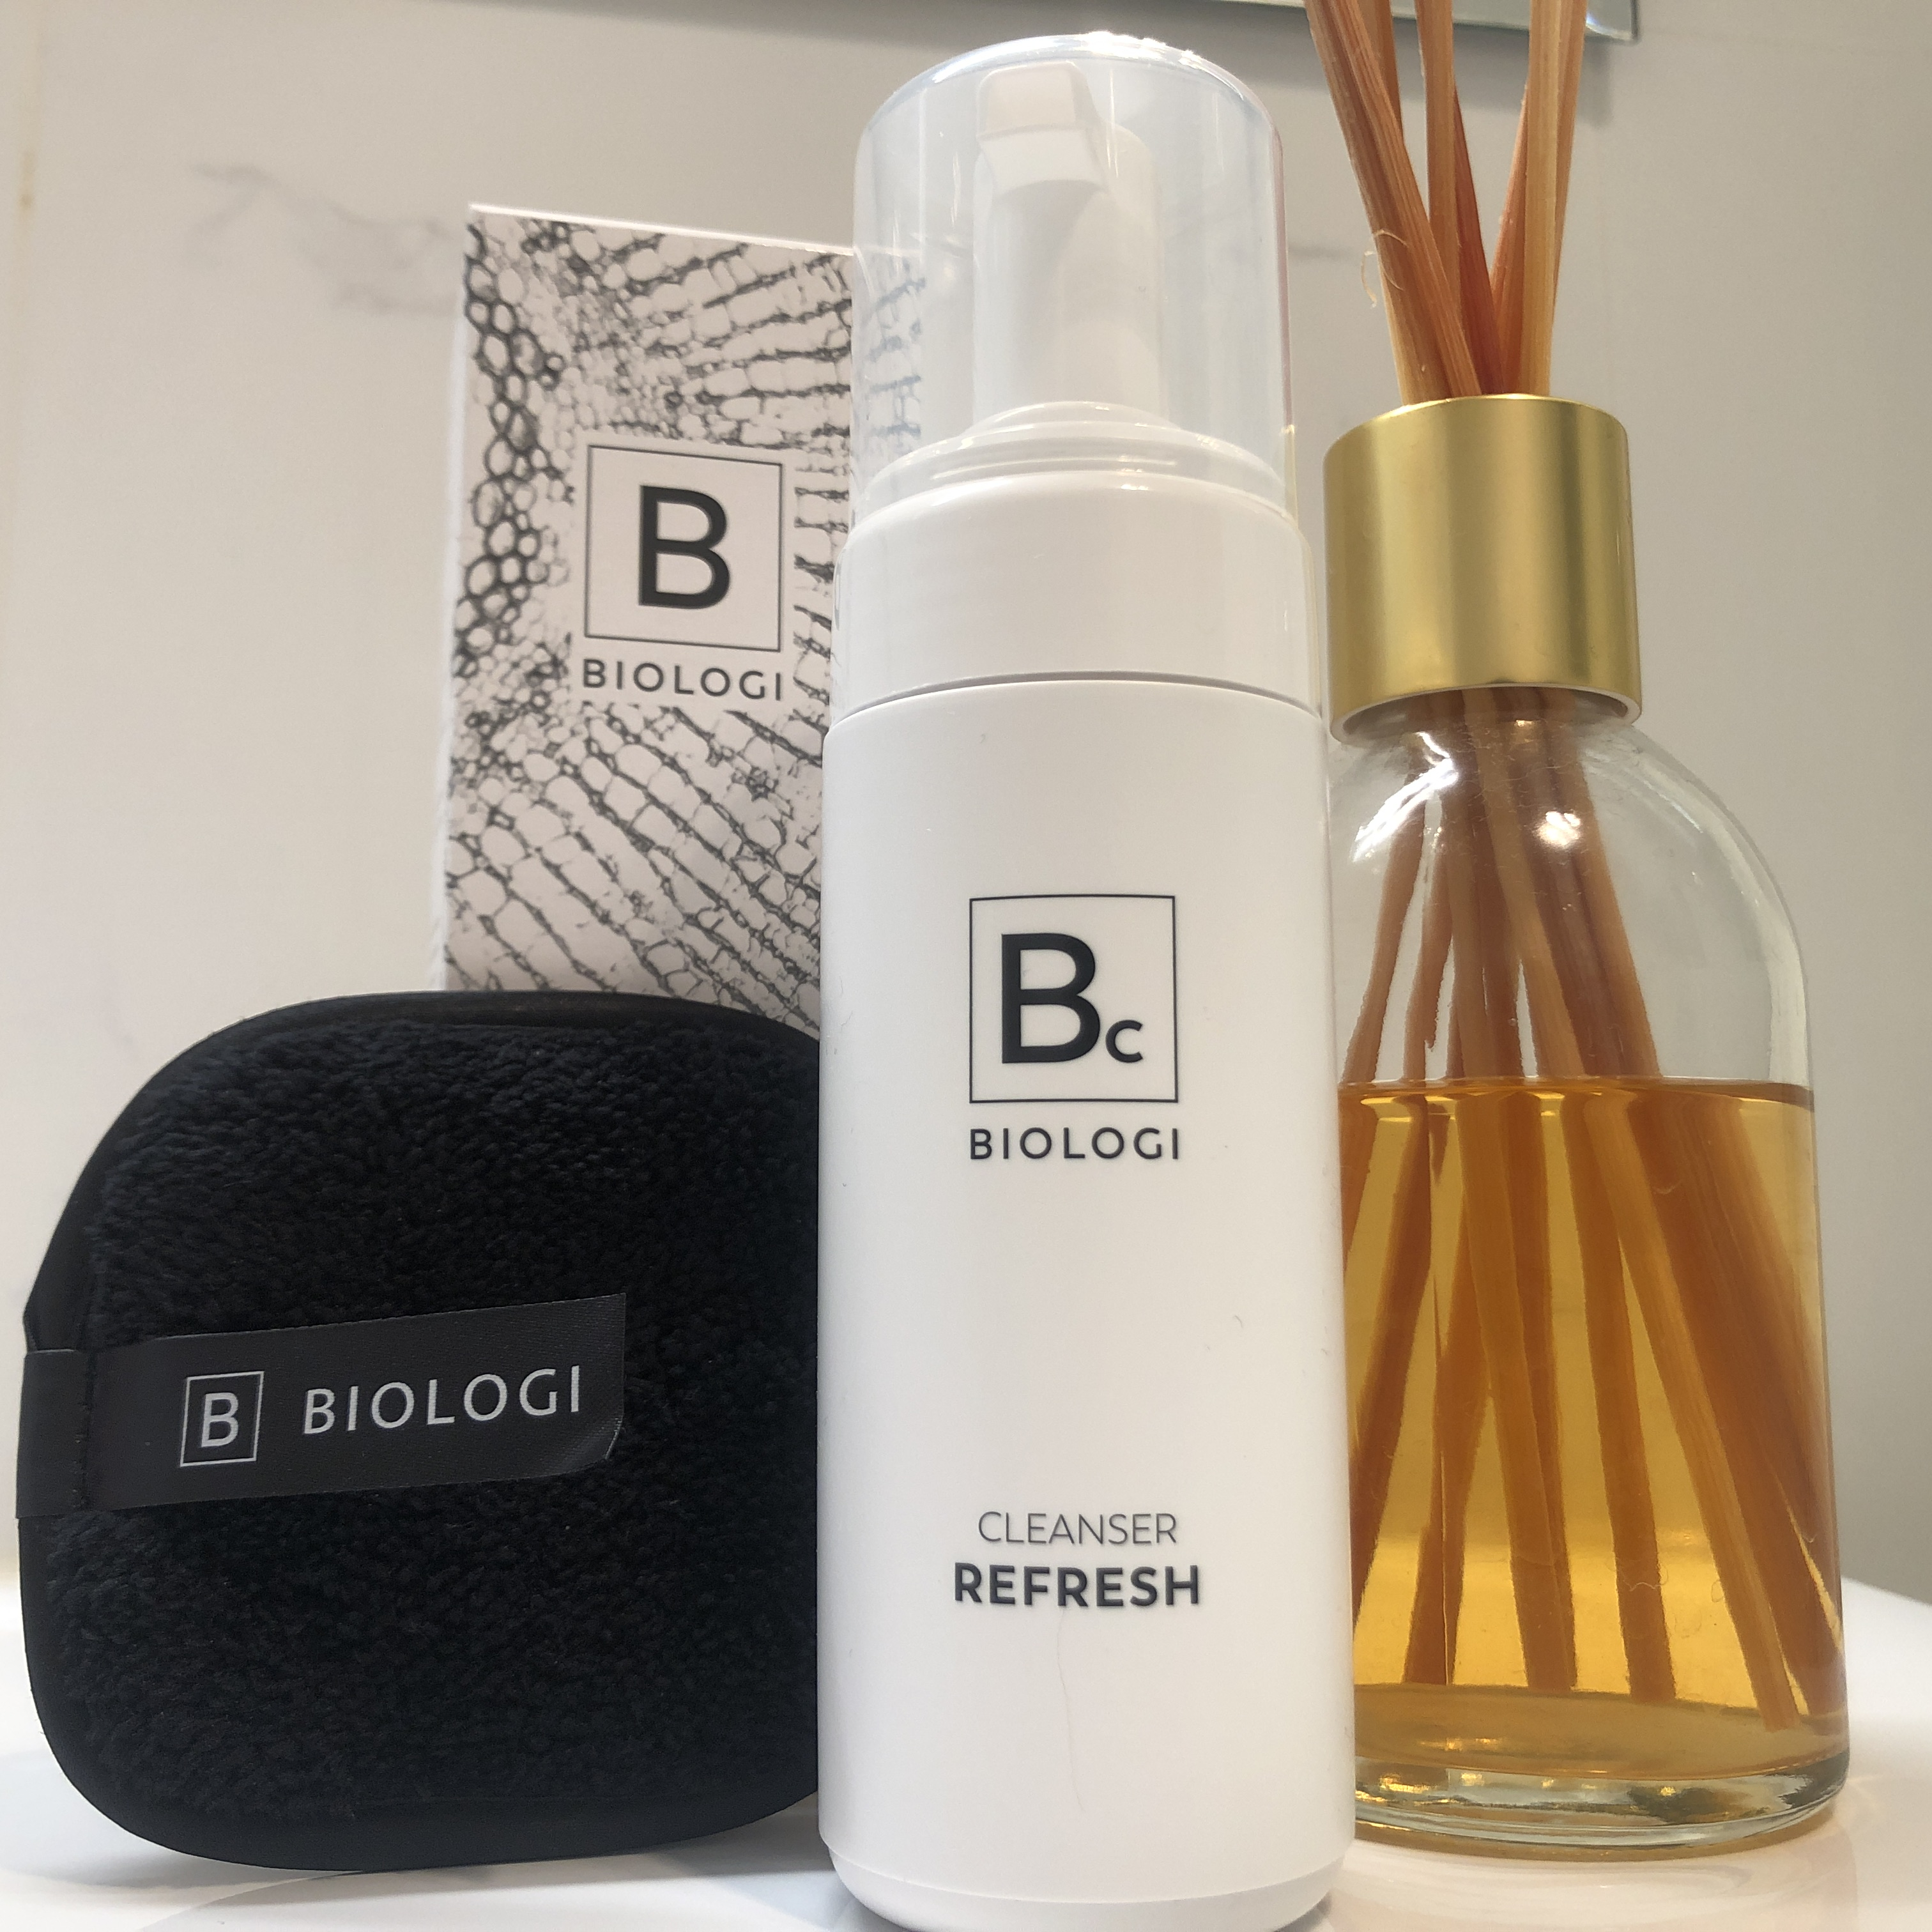 Biologi facial cleanser